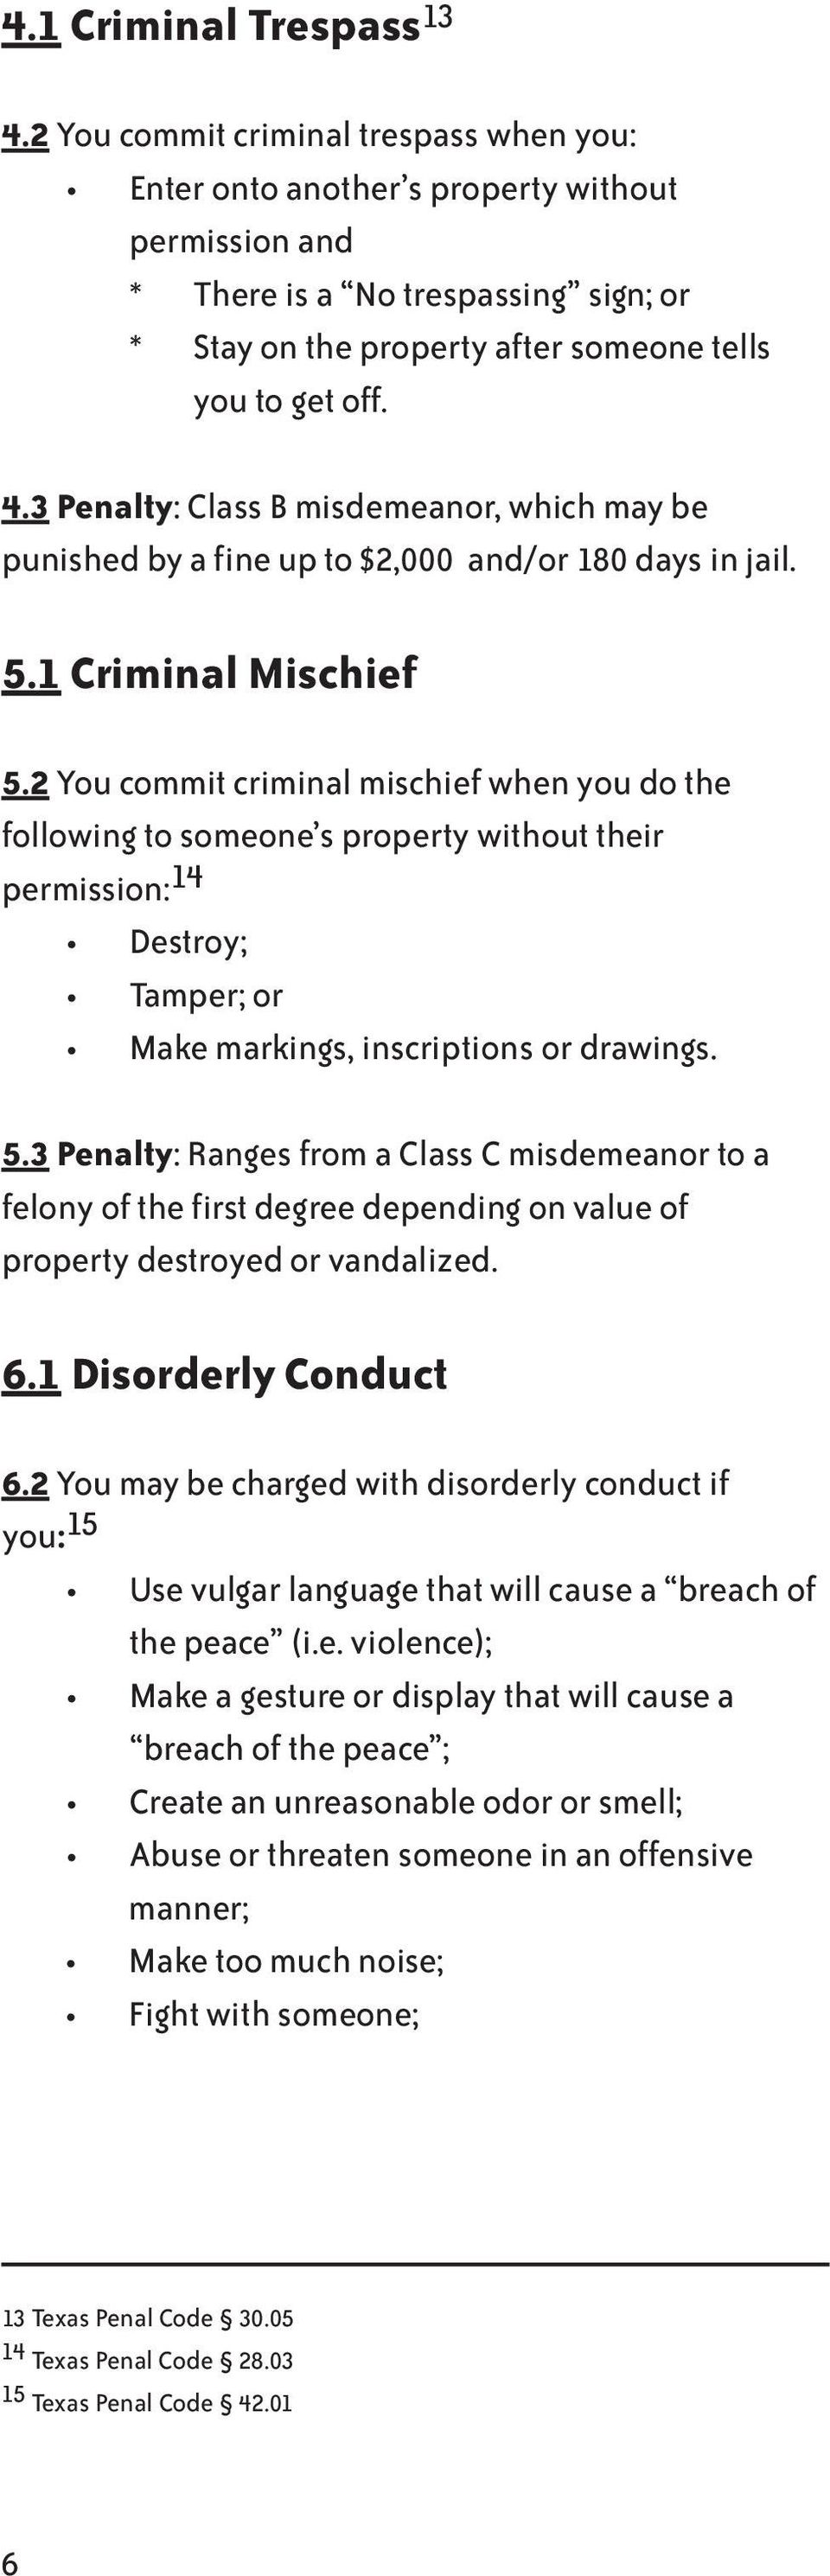 3 Penalty: Class B misdemeanor, which may be punished by a fine up to $2,000 and/or 180 days in jail. 5.1 Criminal Mischief 5.